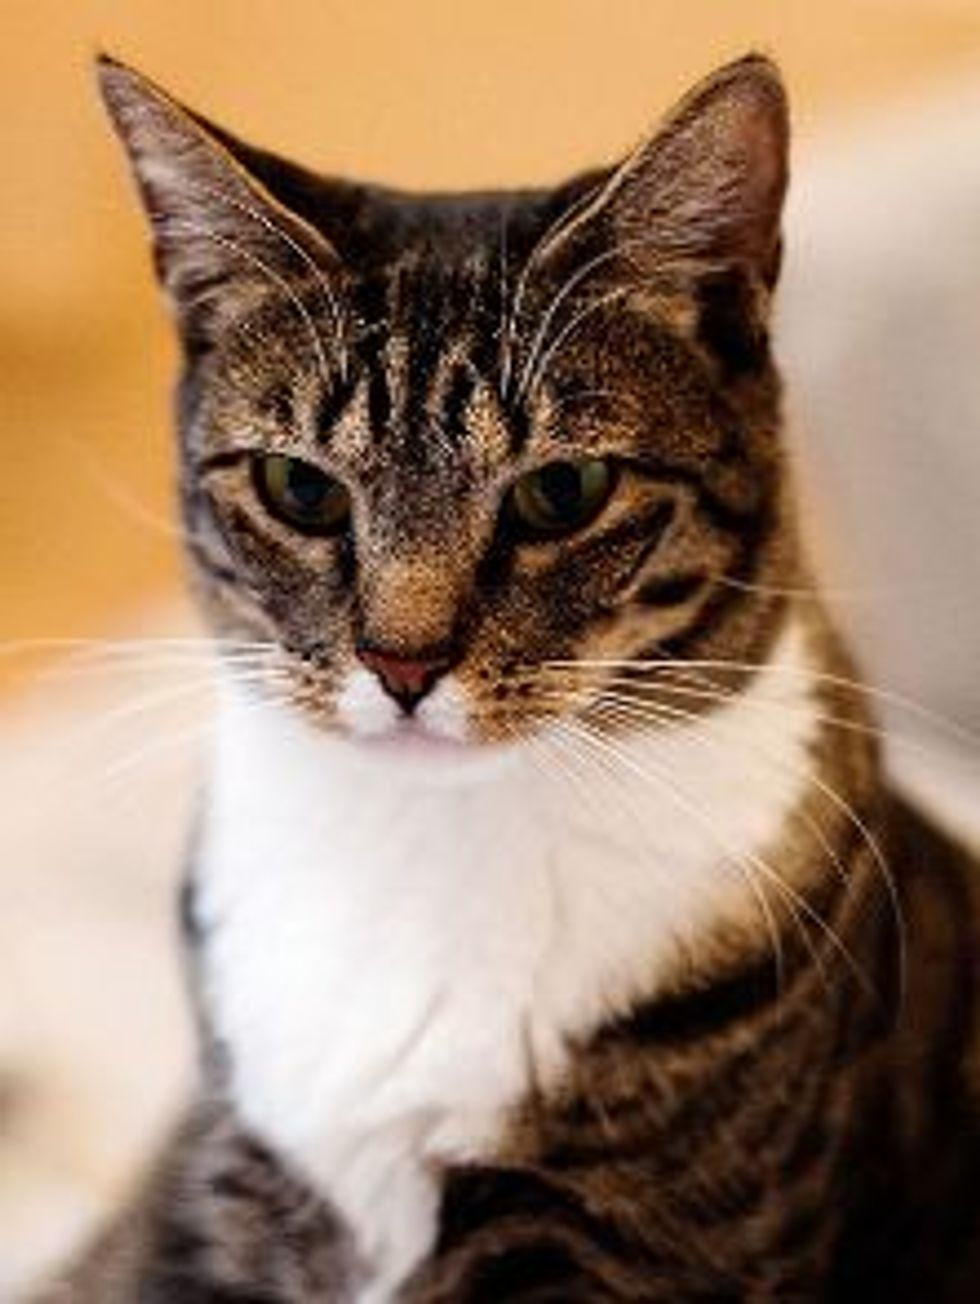 Exterminators Hired for Trap-Neuter-Return, 20 Cats Found in an Abandoned House